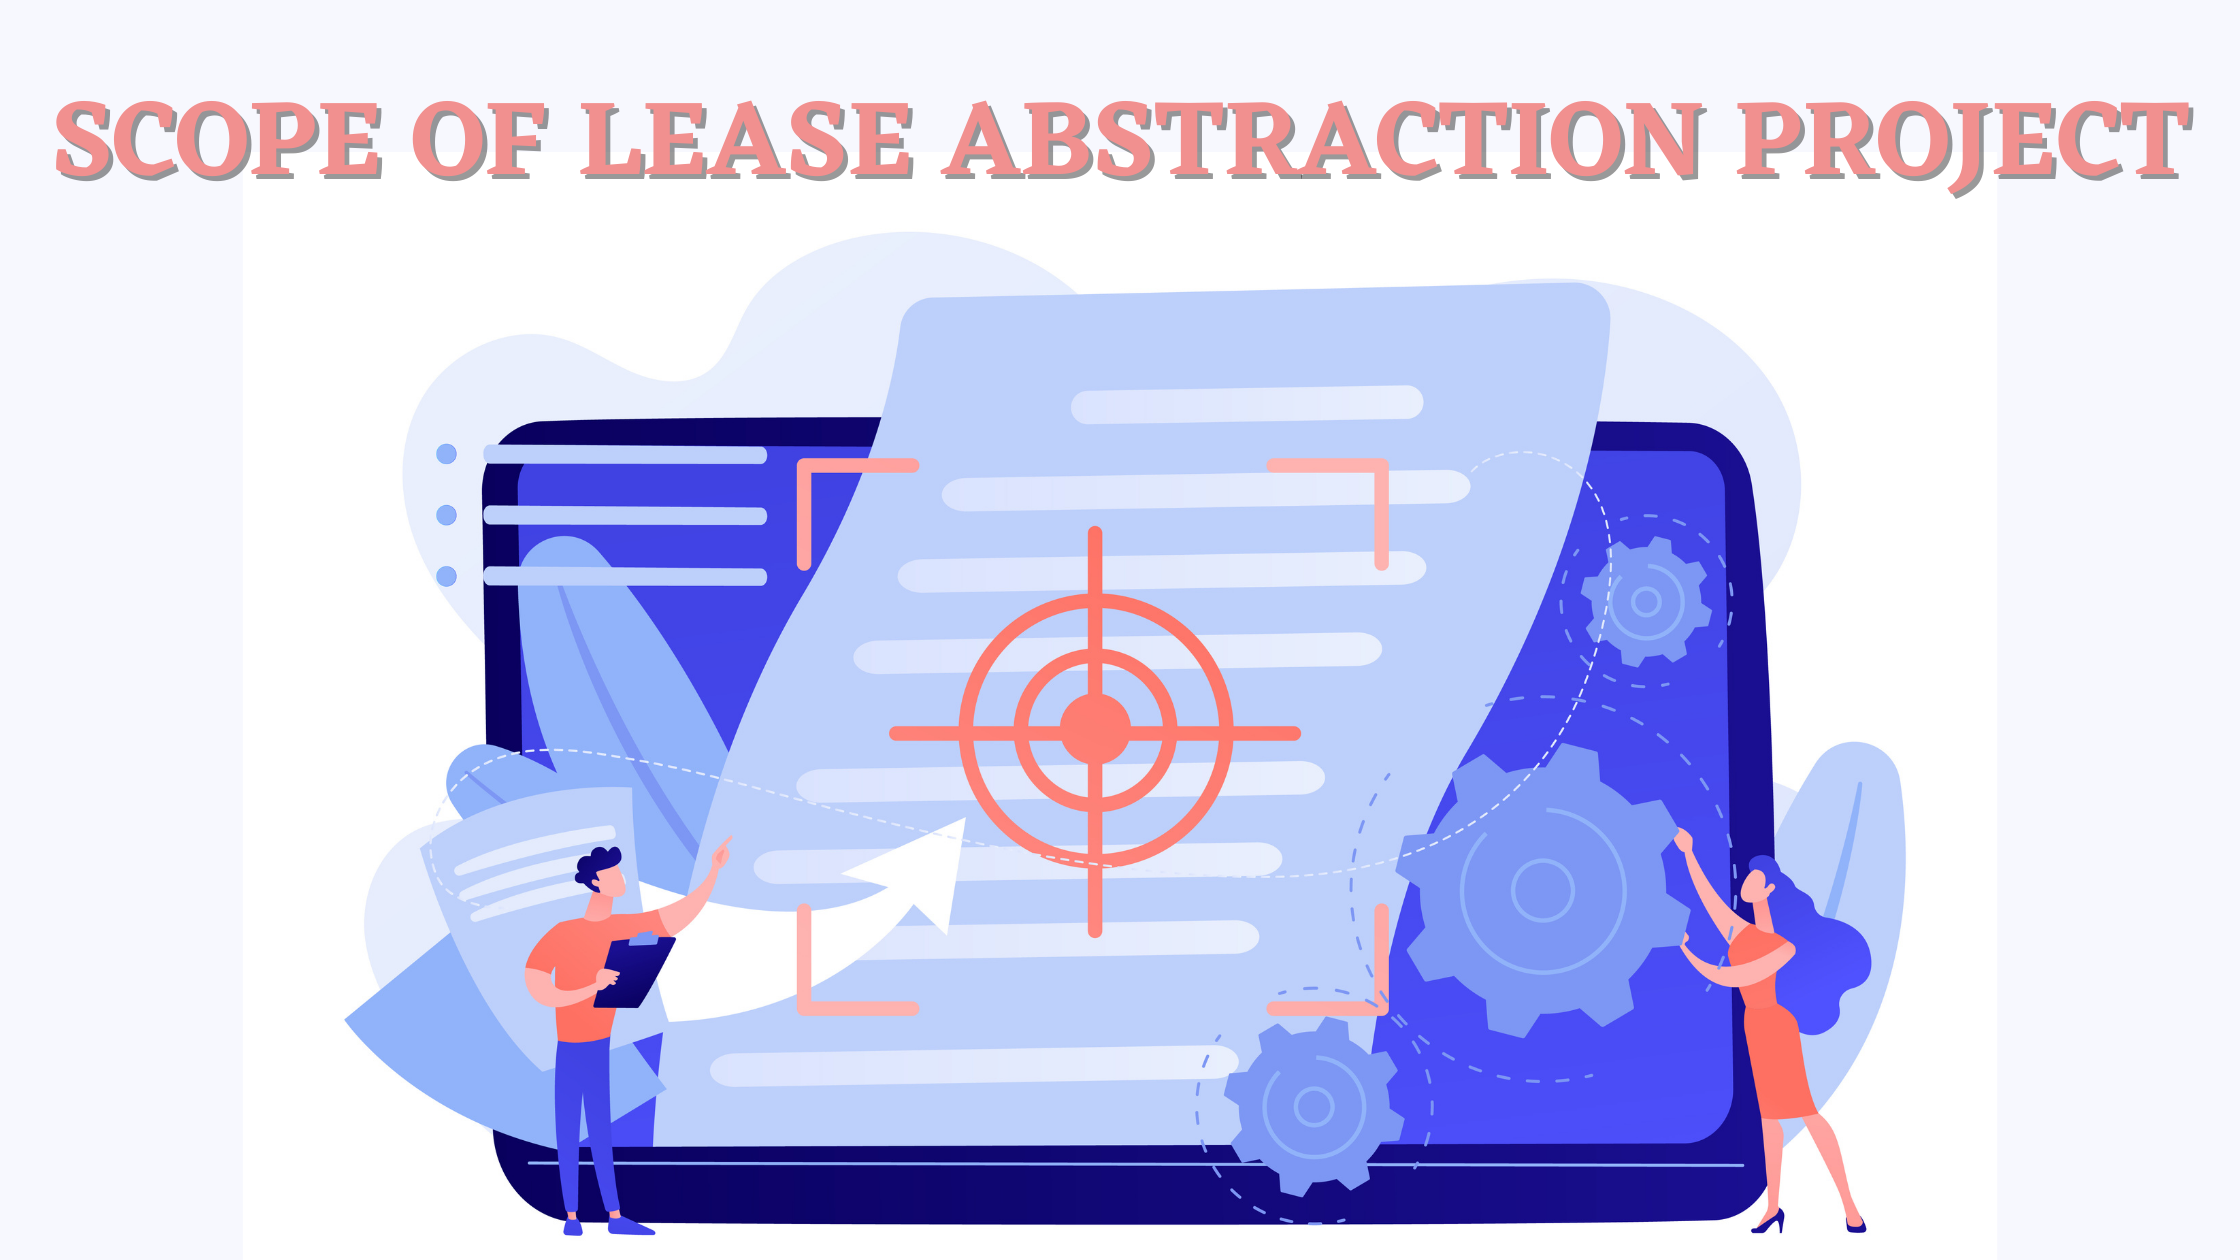 Lease abstraction project